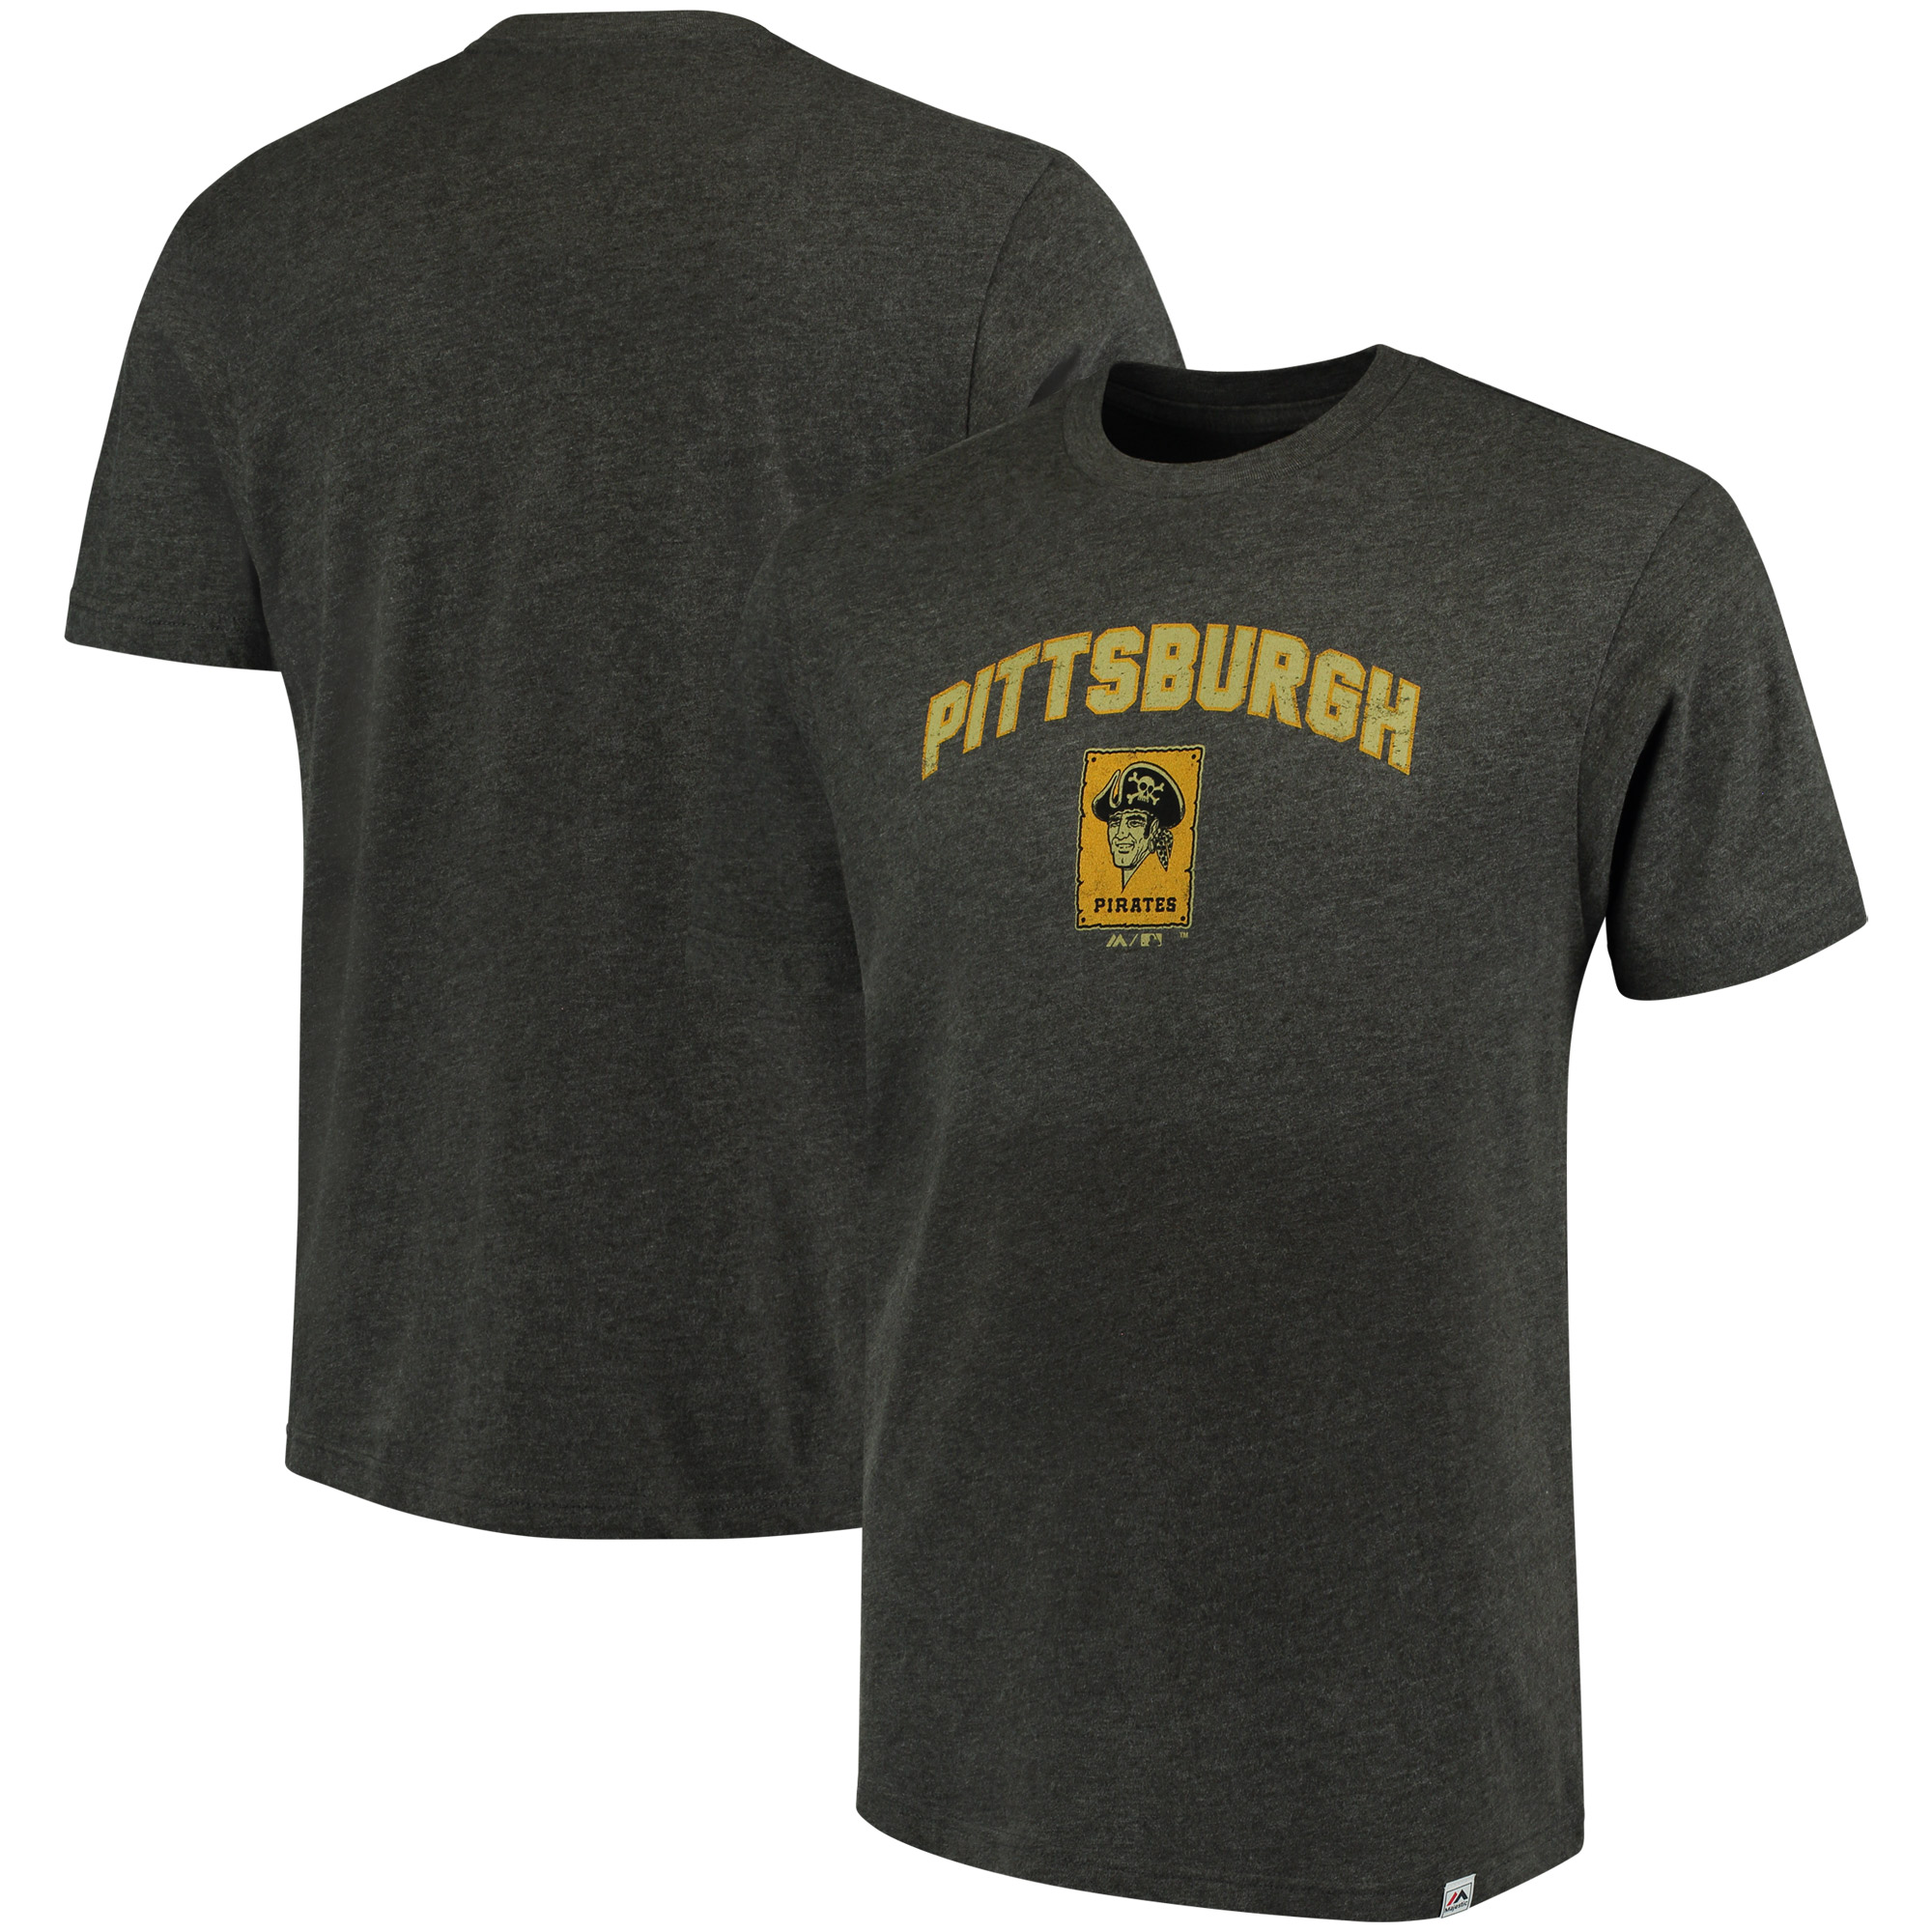 Pittsburgh Pirates Majestic Cooperstown Collection Eephus Pitch Softhand T-Shirt - Gray